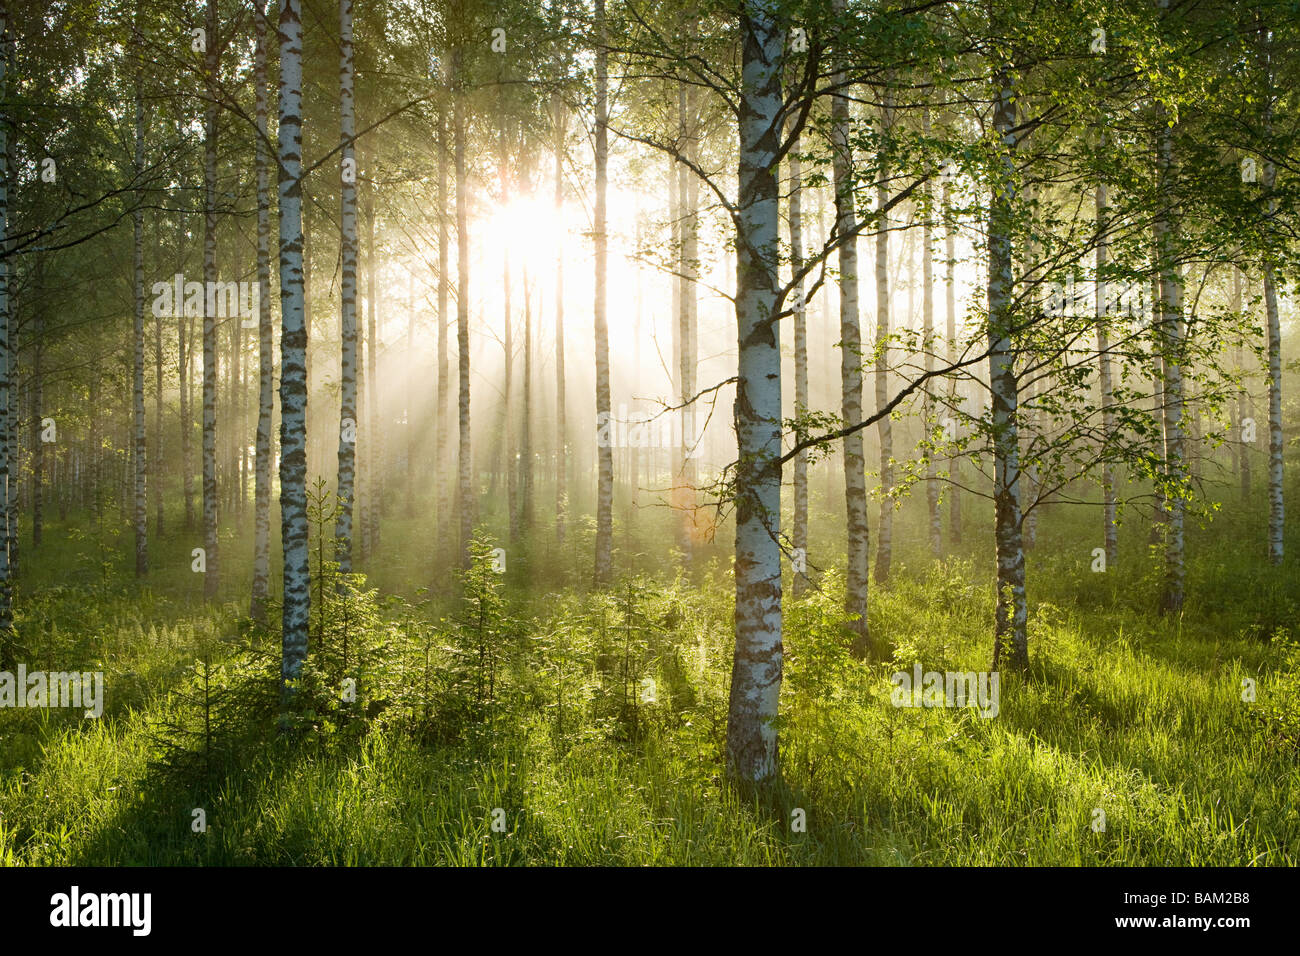 Sunlight in forest of birch trees - Stock Image